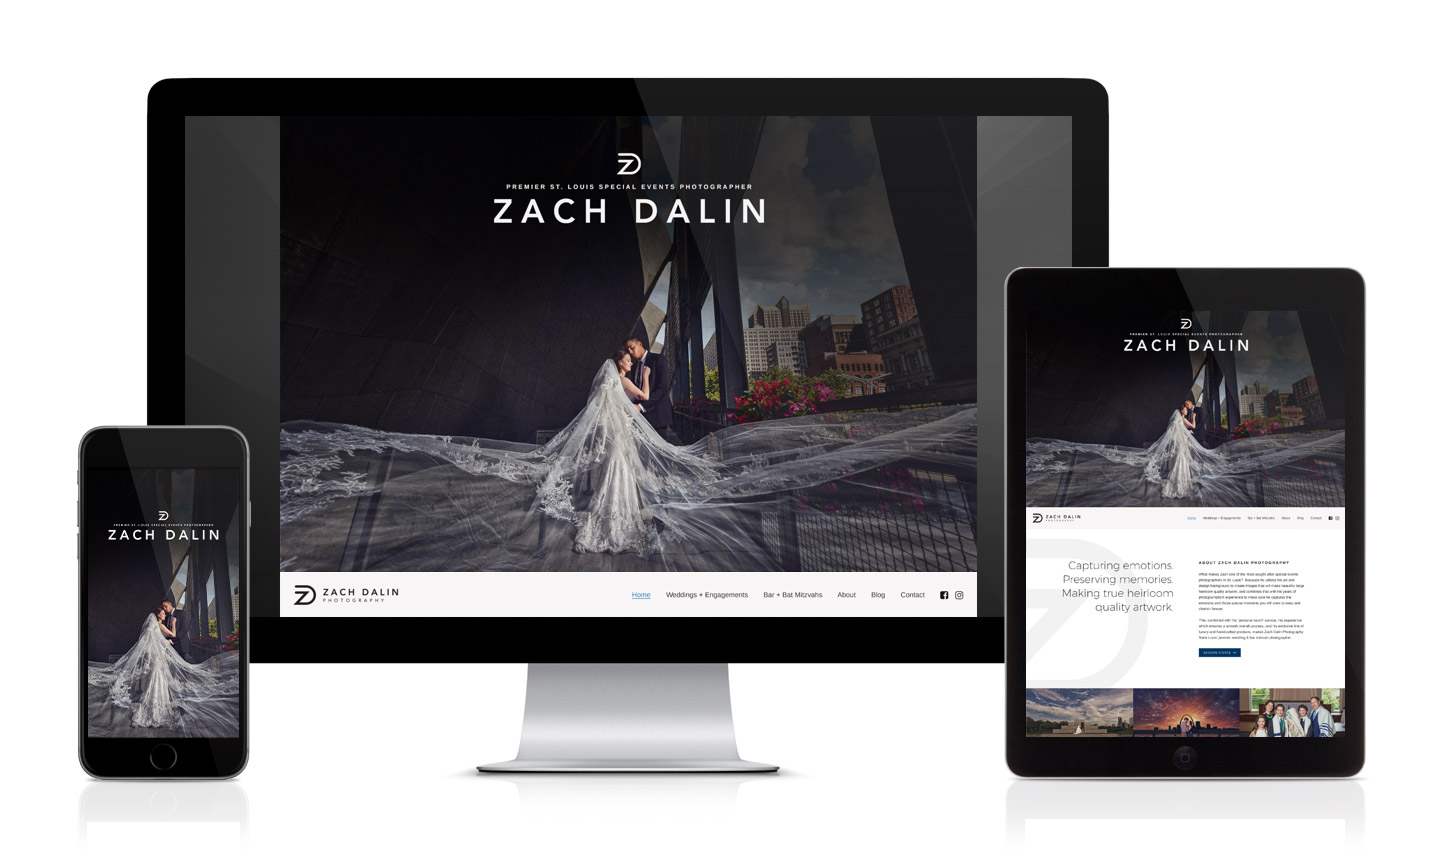 Zach Dalin Website